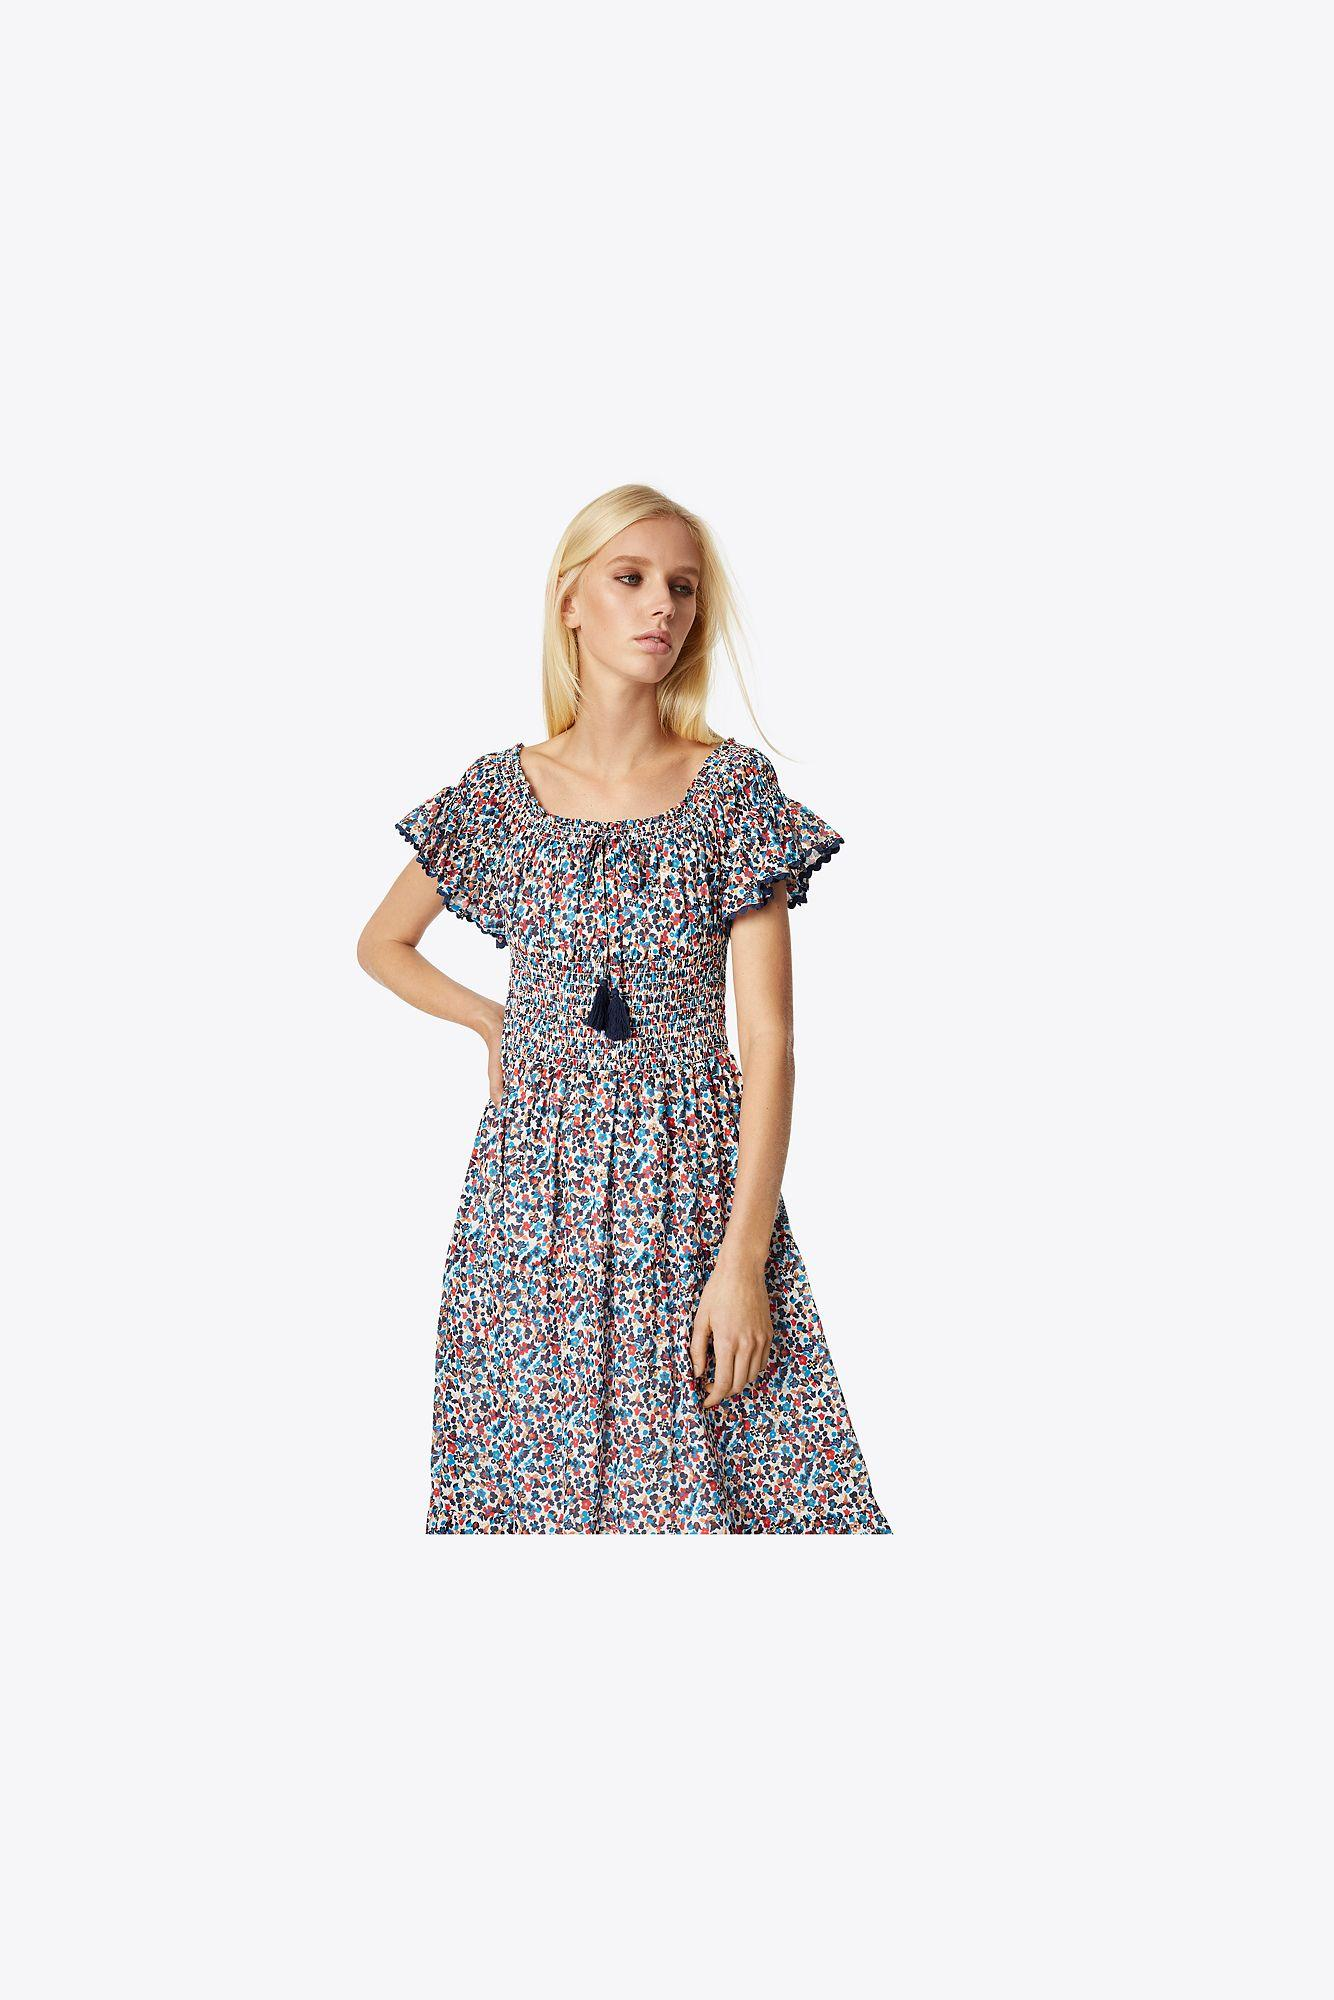 4b105a6136d6 Tory Burch Wildflower Smocked Dress | 986 | Dress in Blue - Lyst